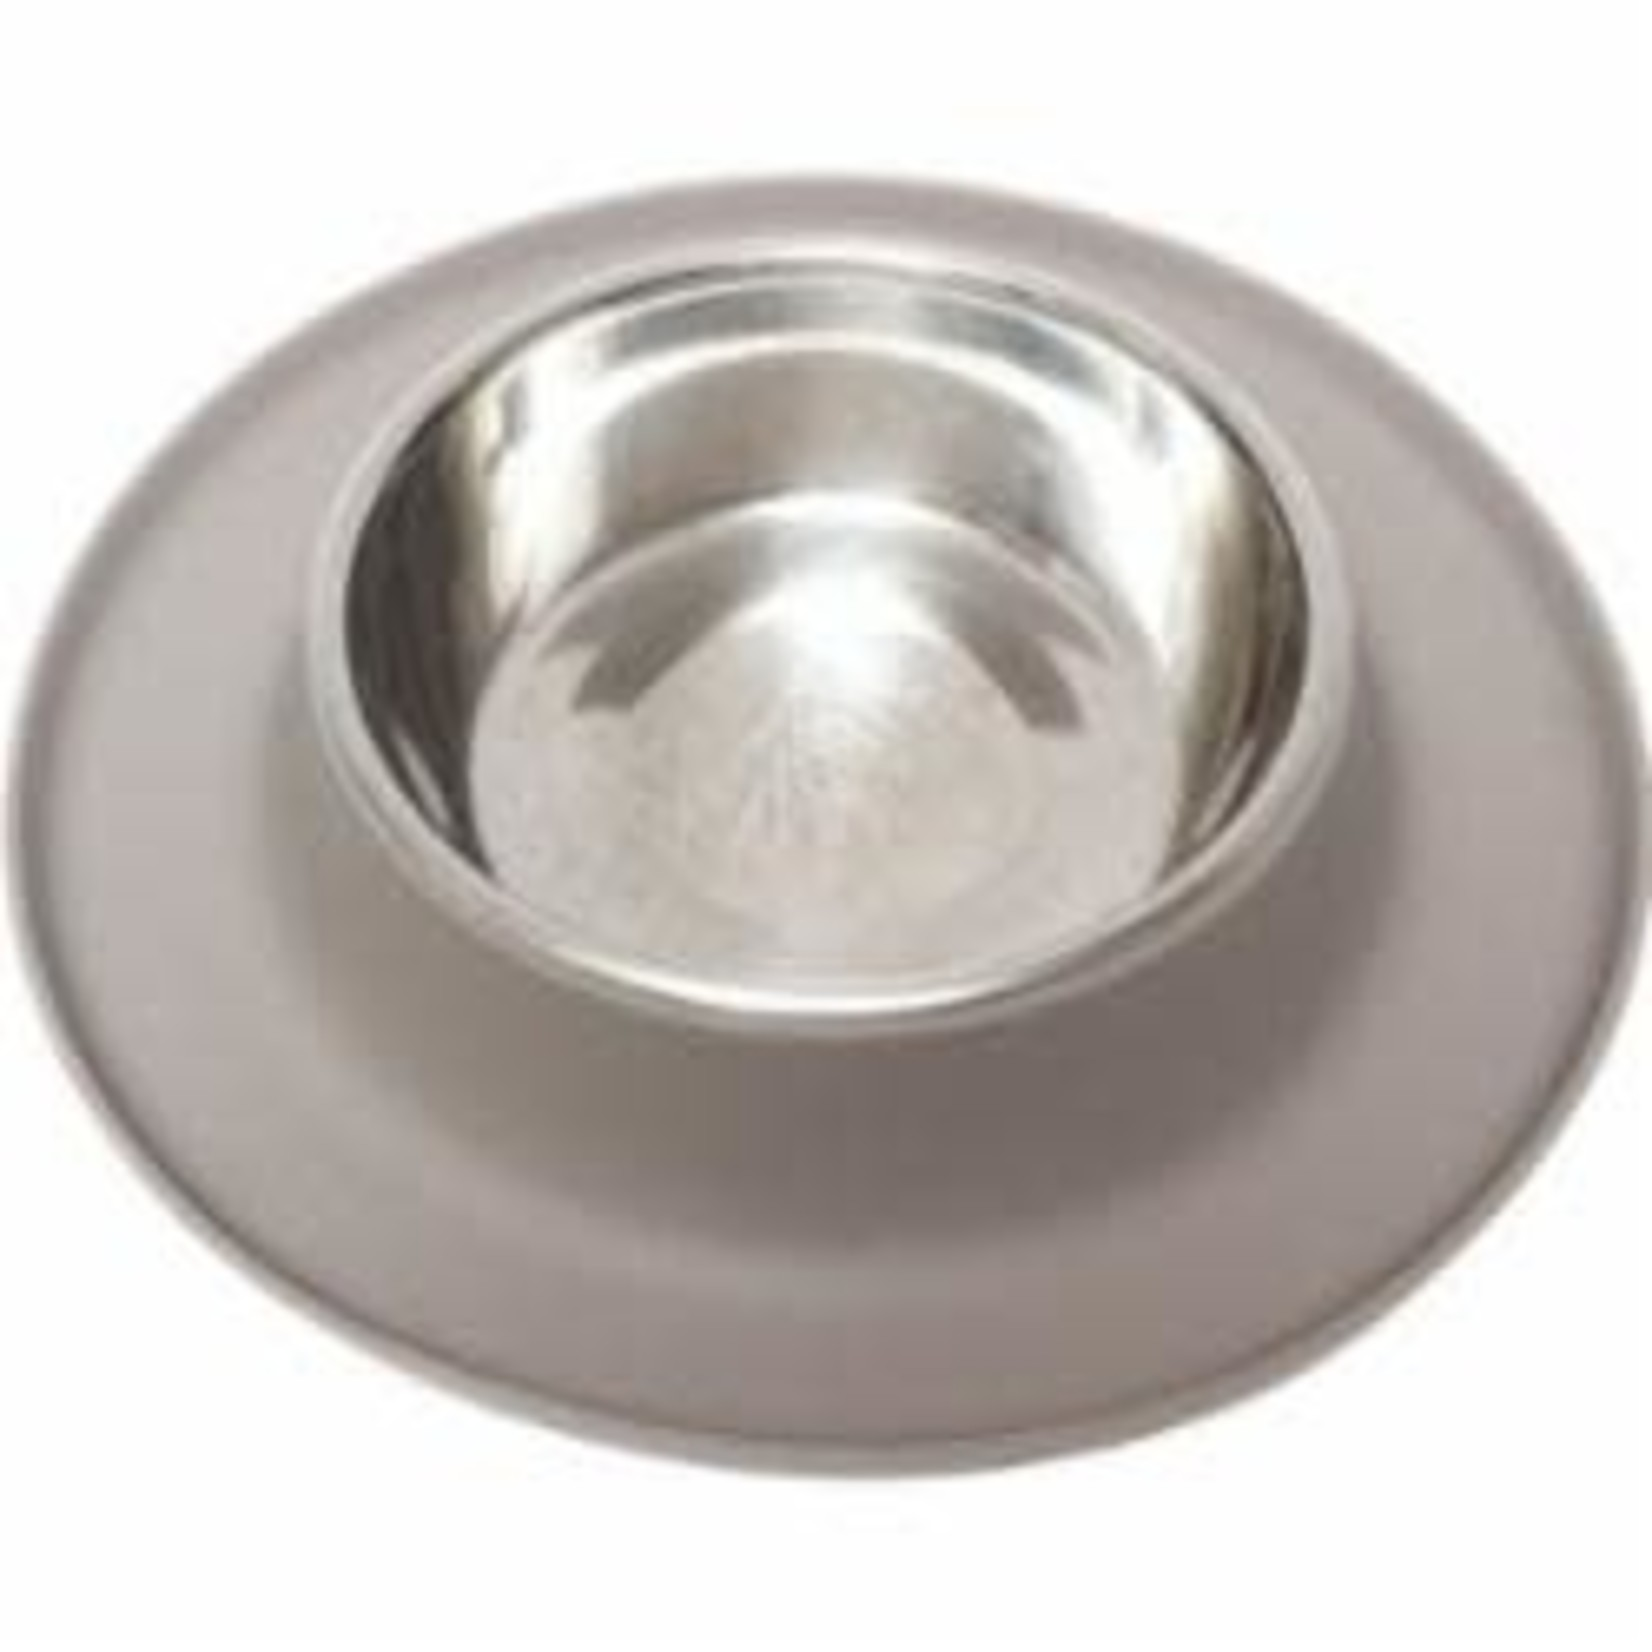 Messy Mutts Messy Mutts Dog Silicone Feeder Grey 1.5 CUP